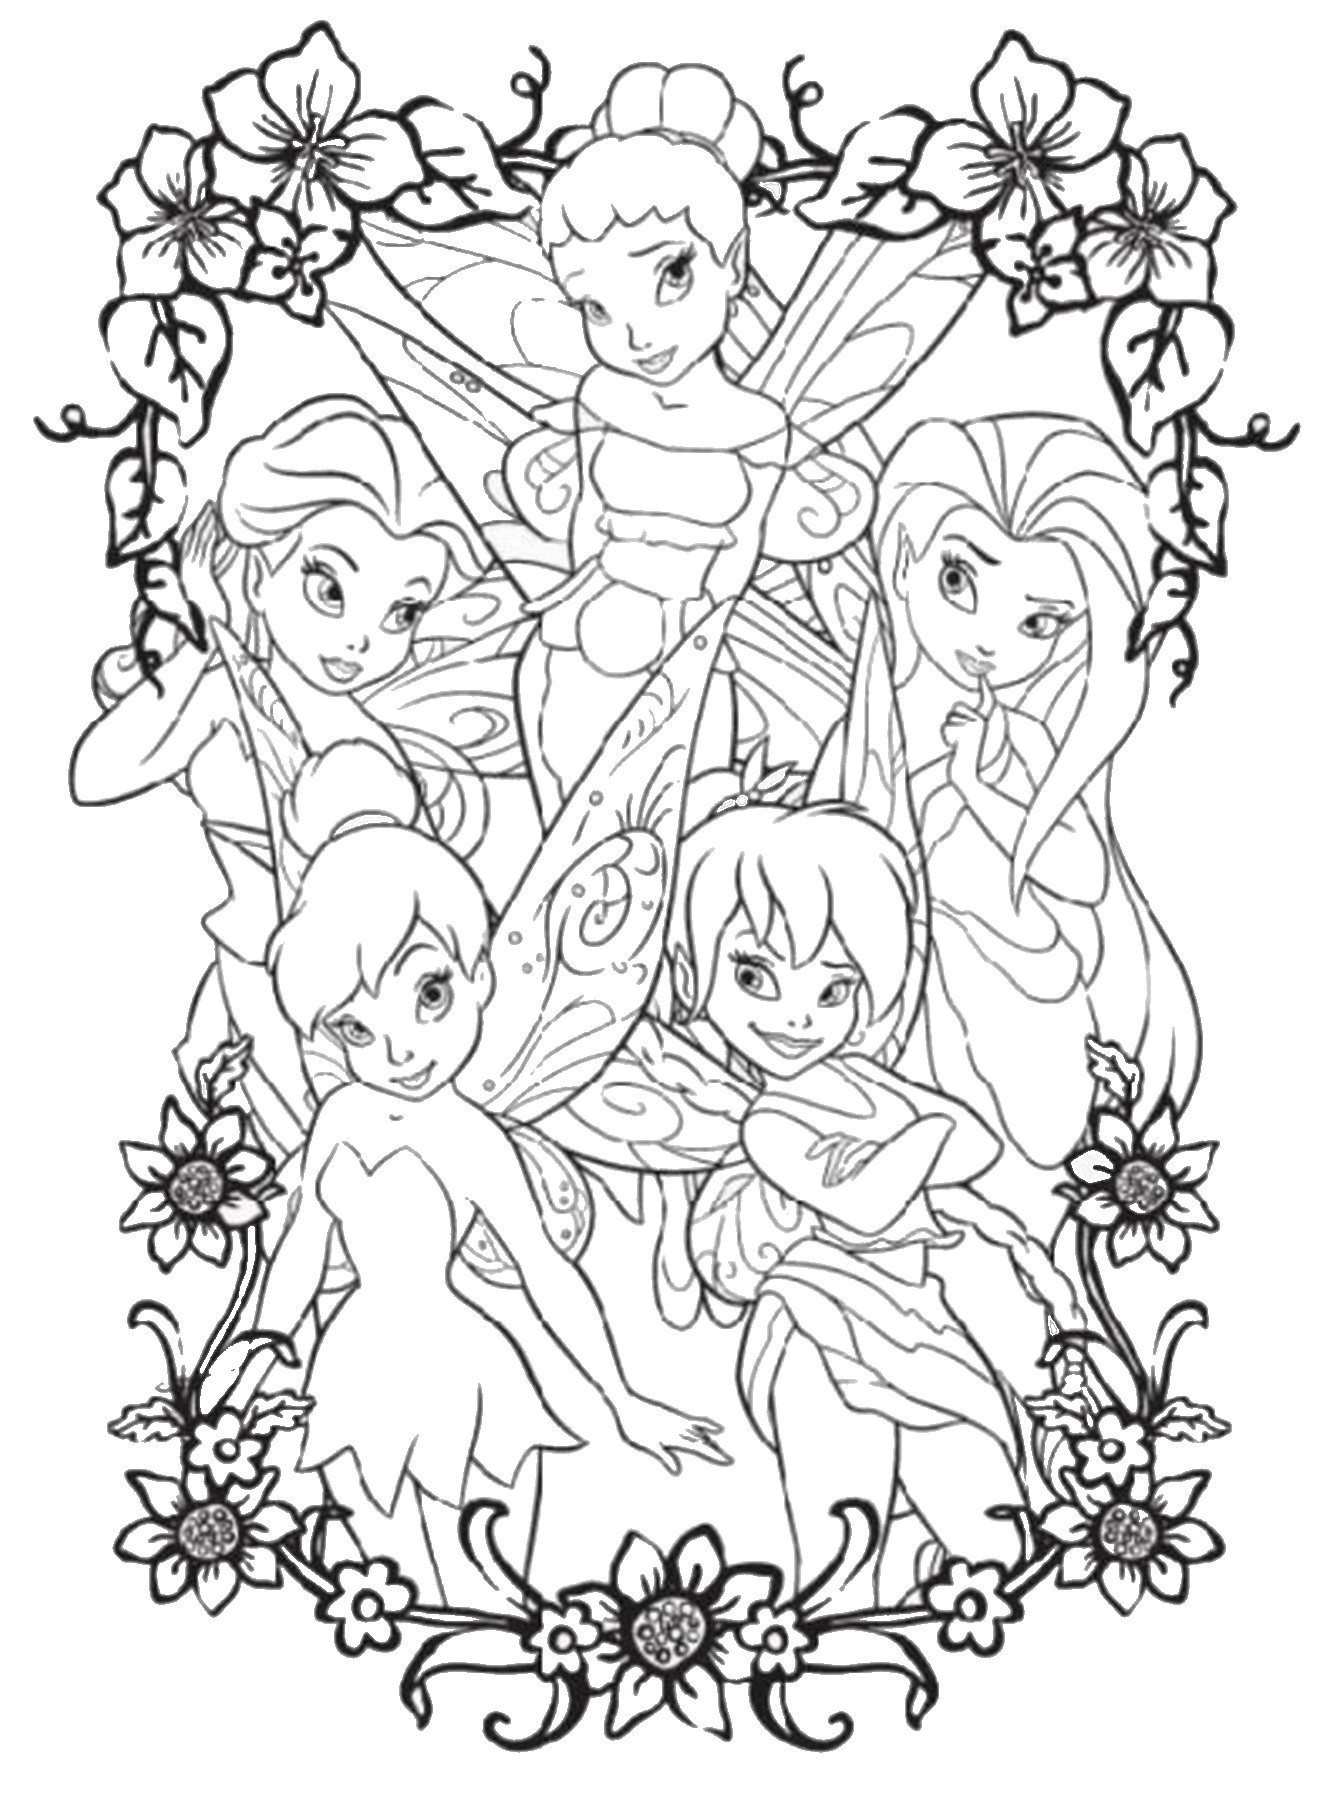 tinkerbell coloring pages free printable 30 tinkerbell coloring pages free coloring pages free coloring free printable tinkerbell pages